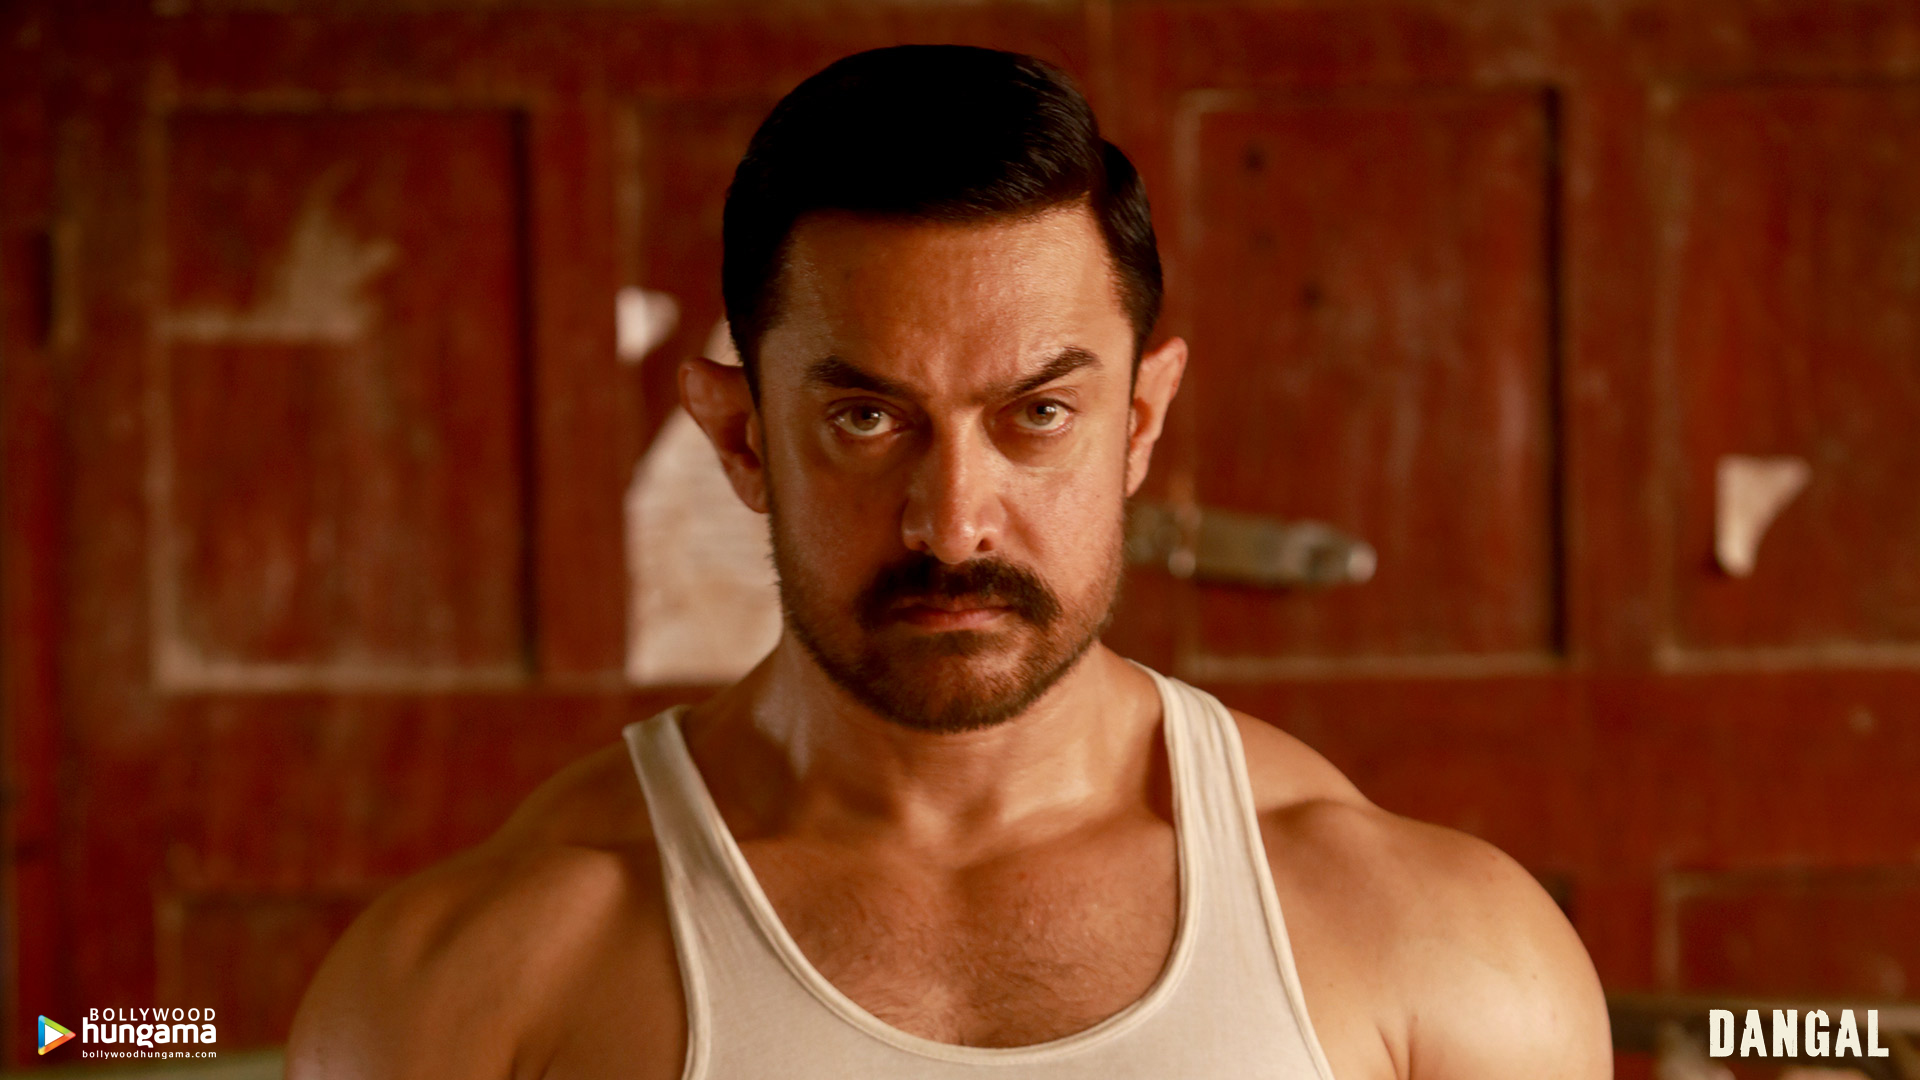 Dangal 2016 Wallpapers Dangal 1 8 Bollywood Hungama